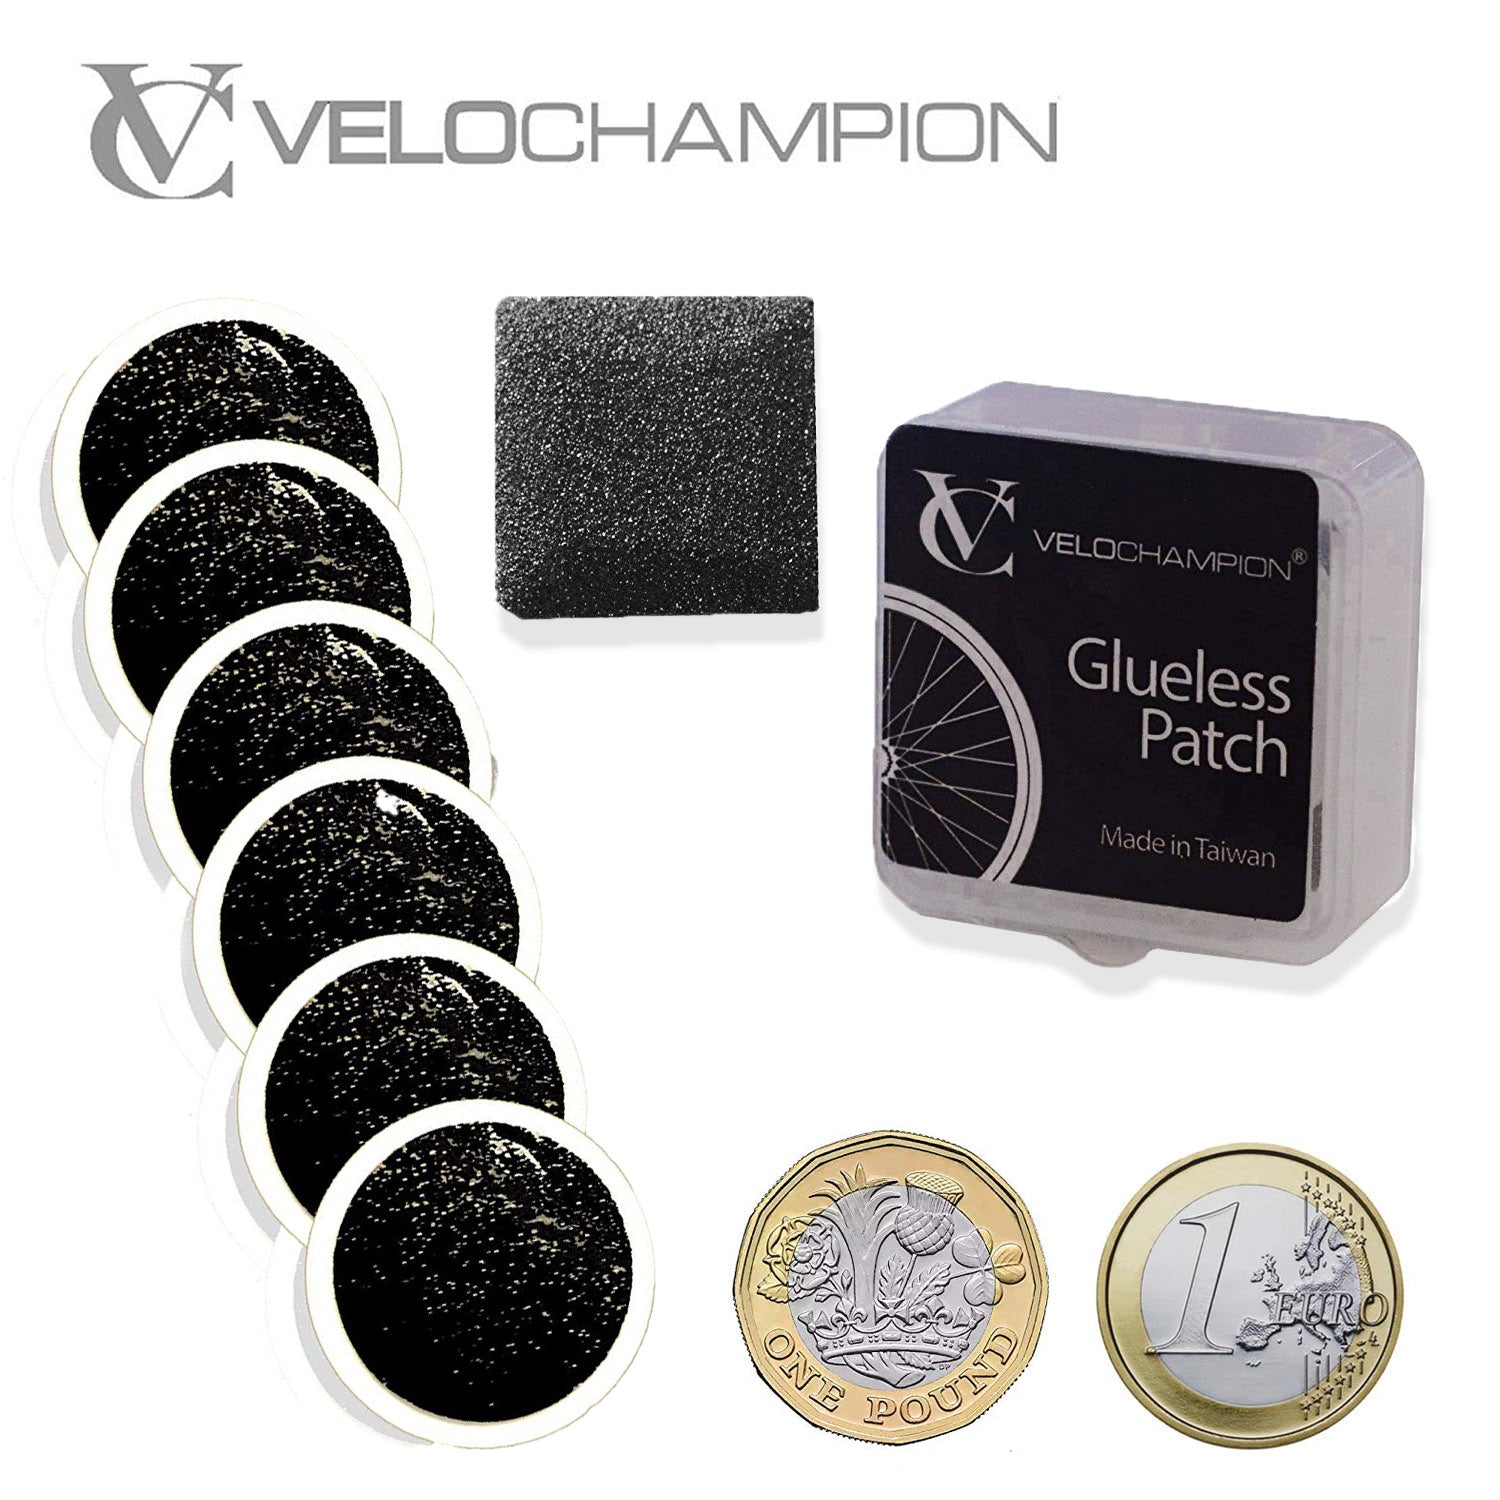 VeloChampion Self-Adhesive Bike Puncture Repair Patches Pack of 6 or Pack of 10